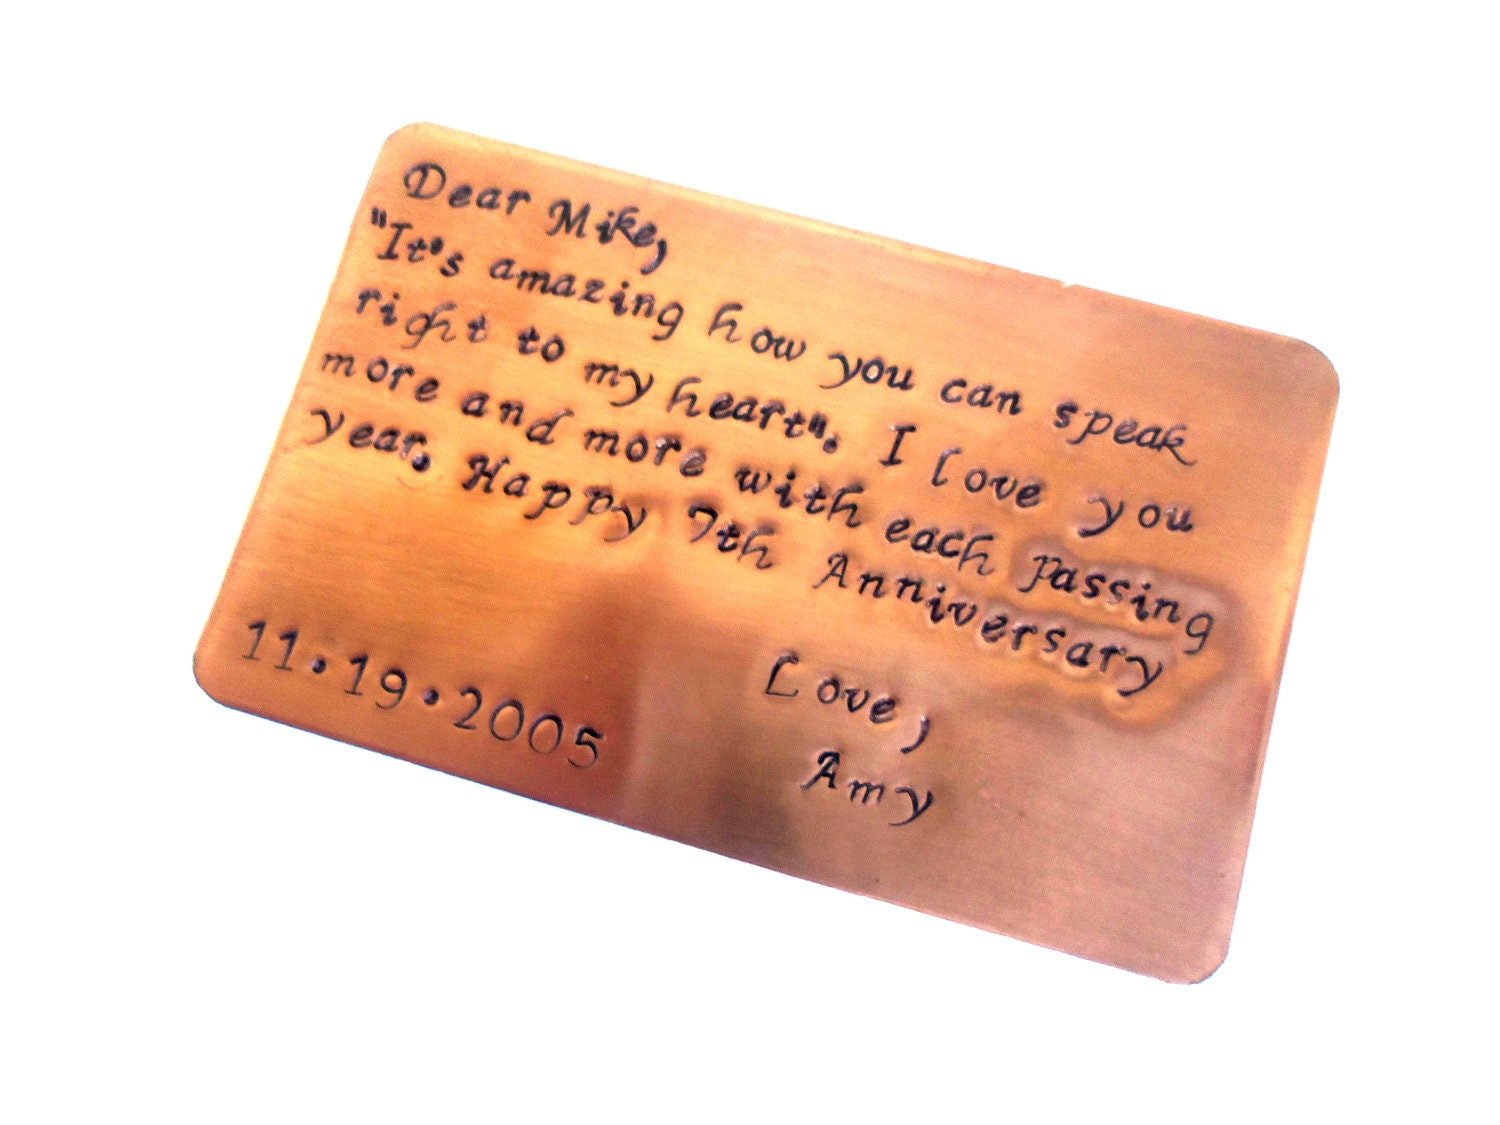 Copper Wedding Anniversary Gifts For Her: Copper Wallet Insert 7th Year Anniversary Keepsake Card For